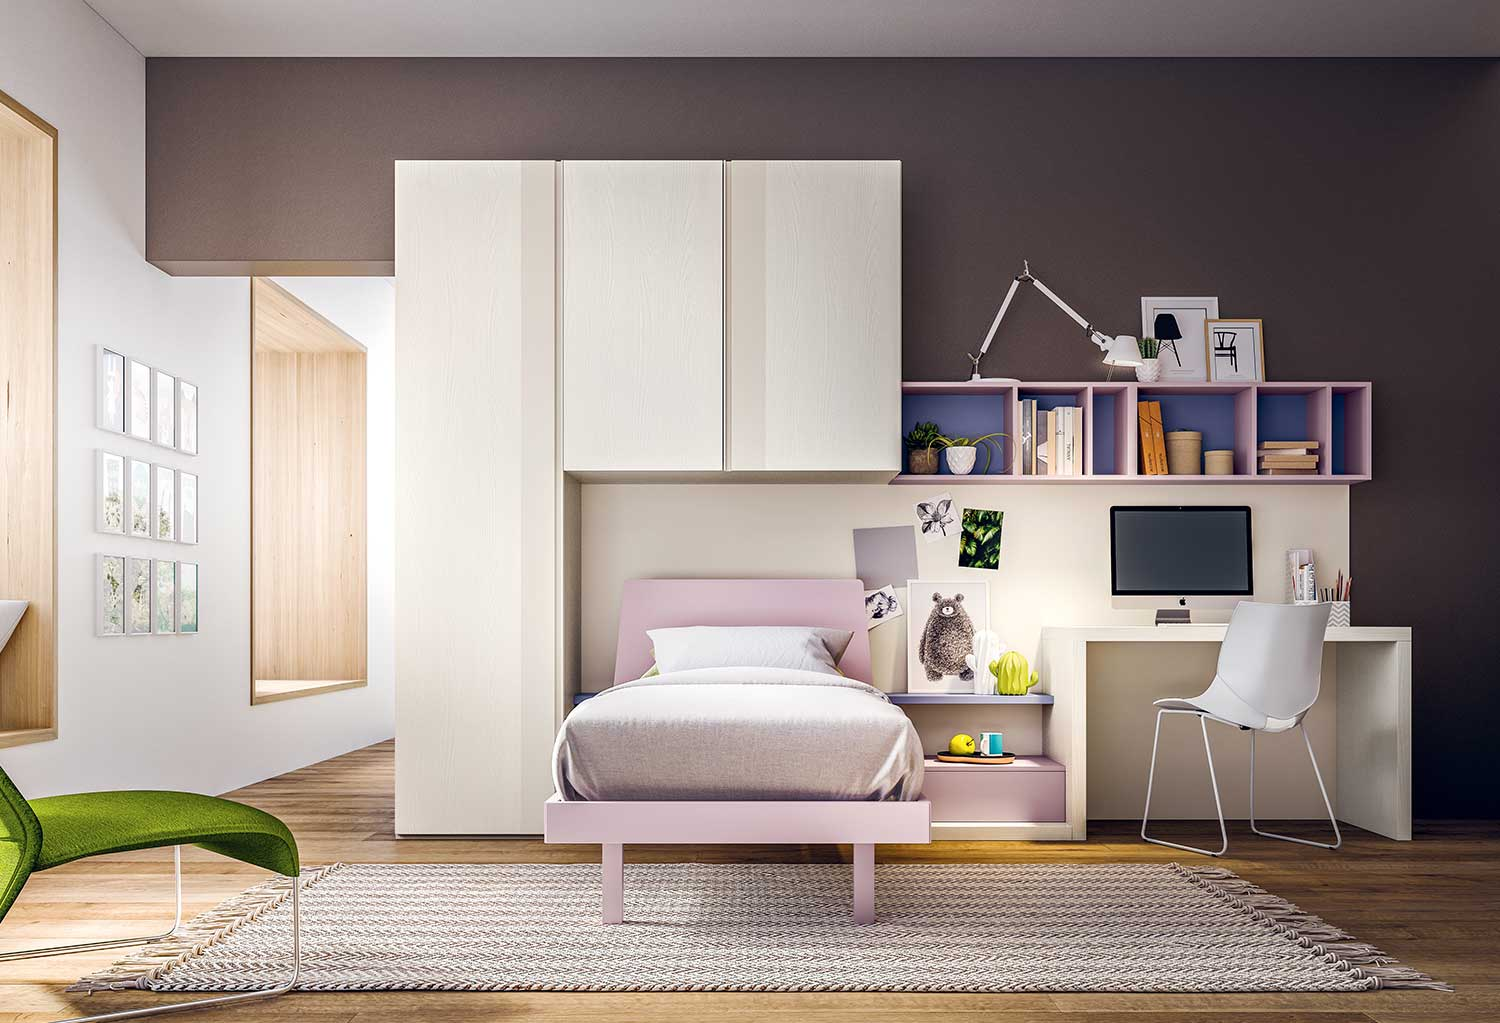 The Start T09 compact space saving girls bedroom furniture maximizes your kids bedroom by making full use of a single wall